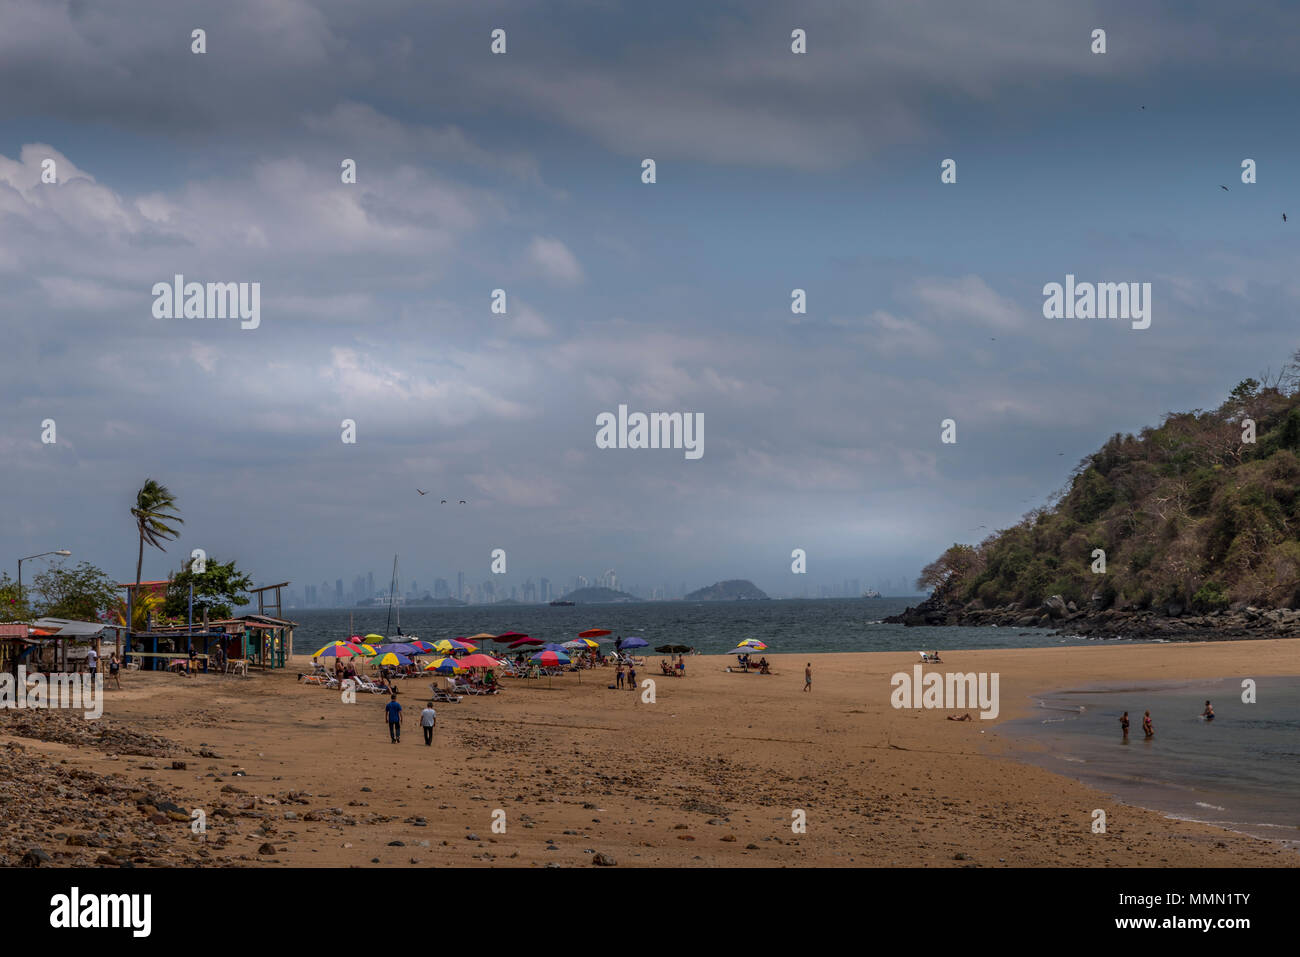 beach scene on taboga island with the skyline of panama city in the